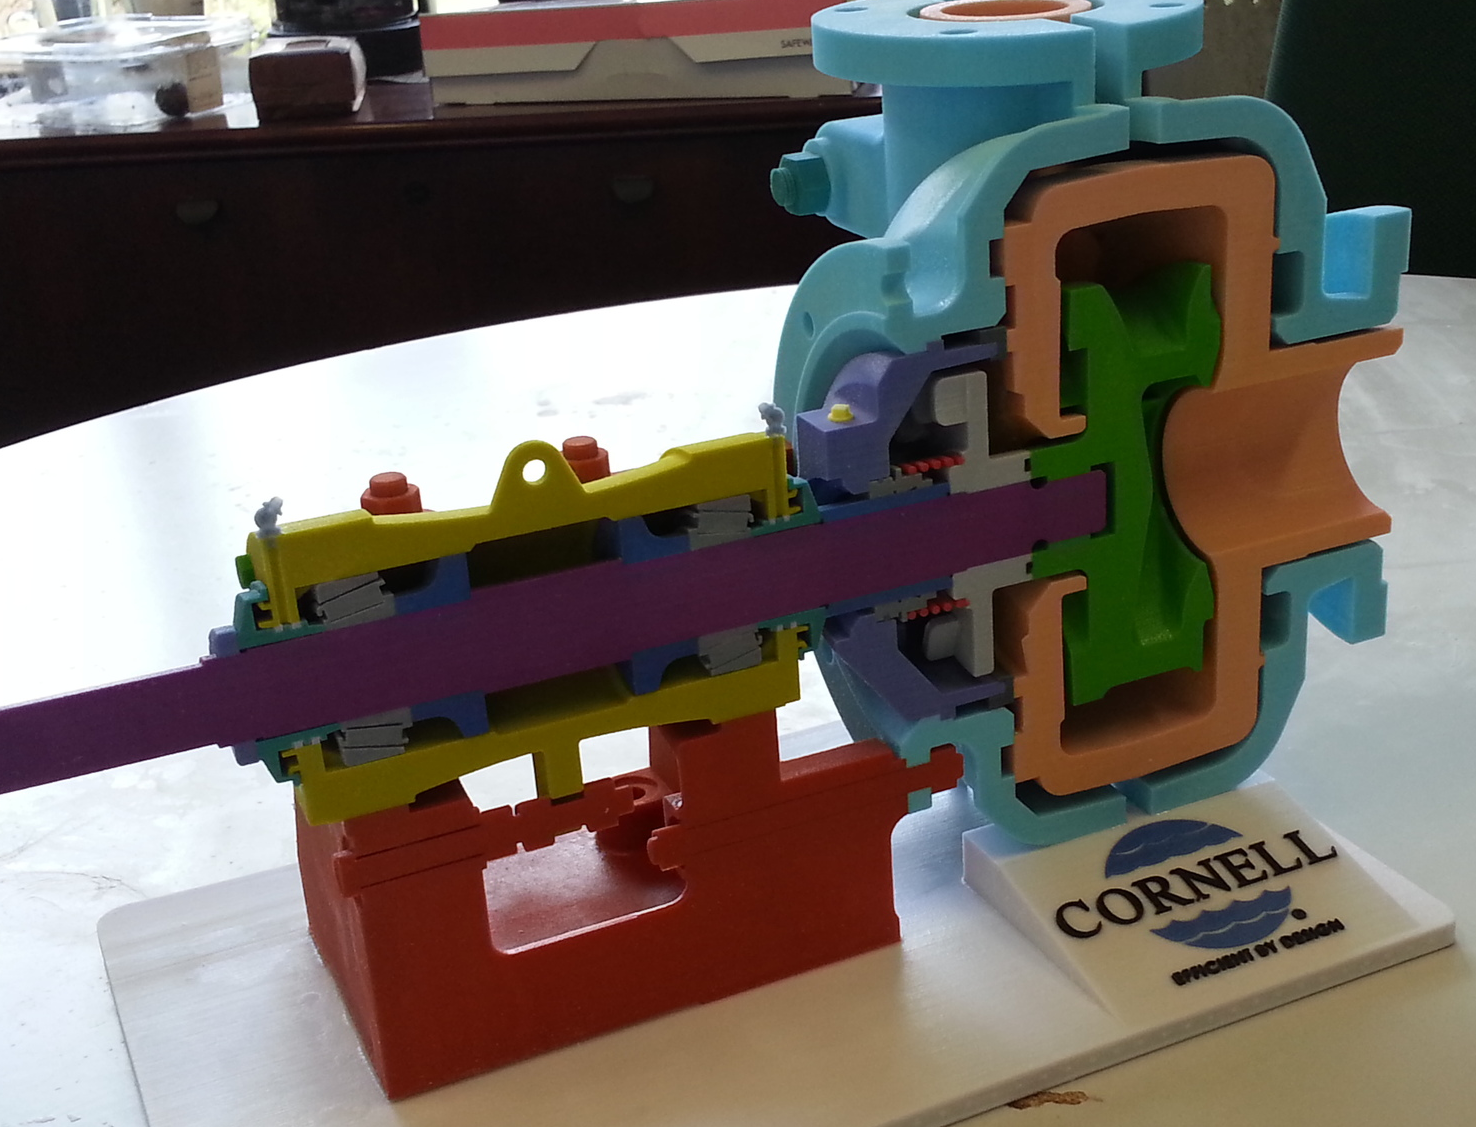 Pump cutaway model to show off internal components, complete with logo